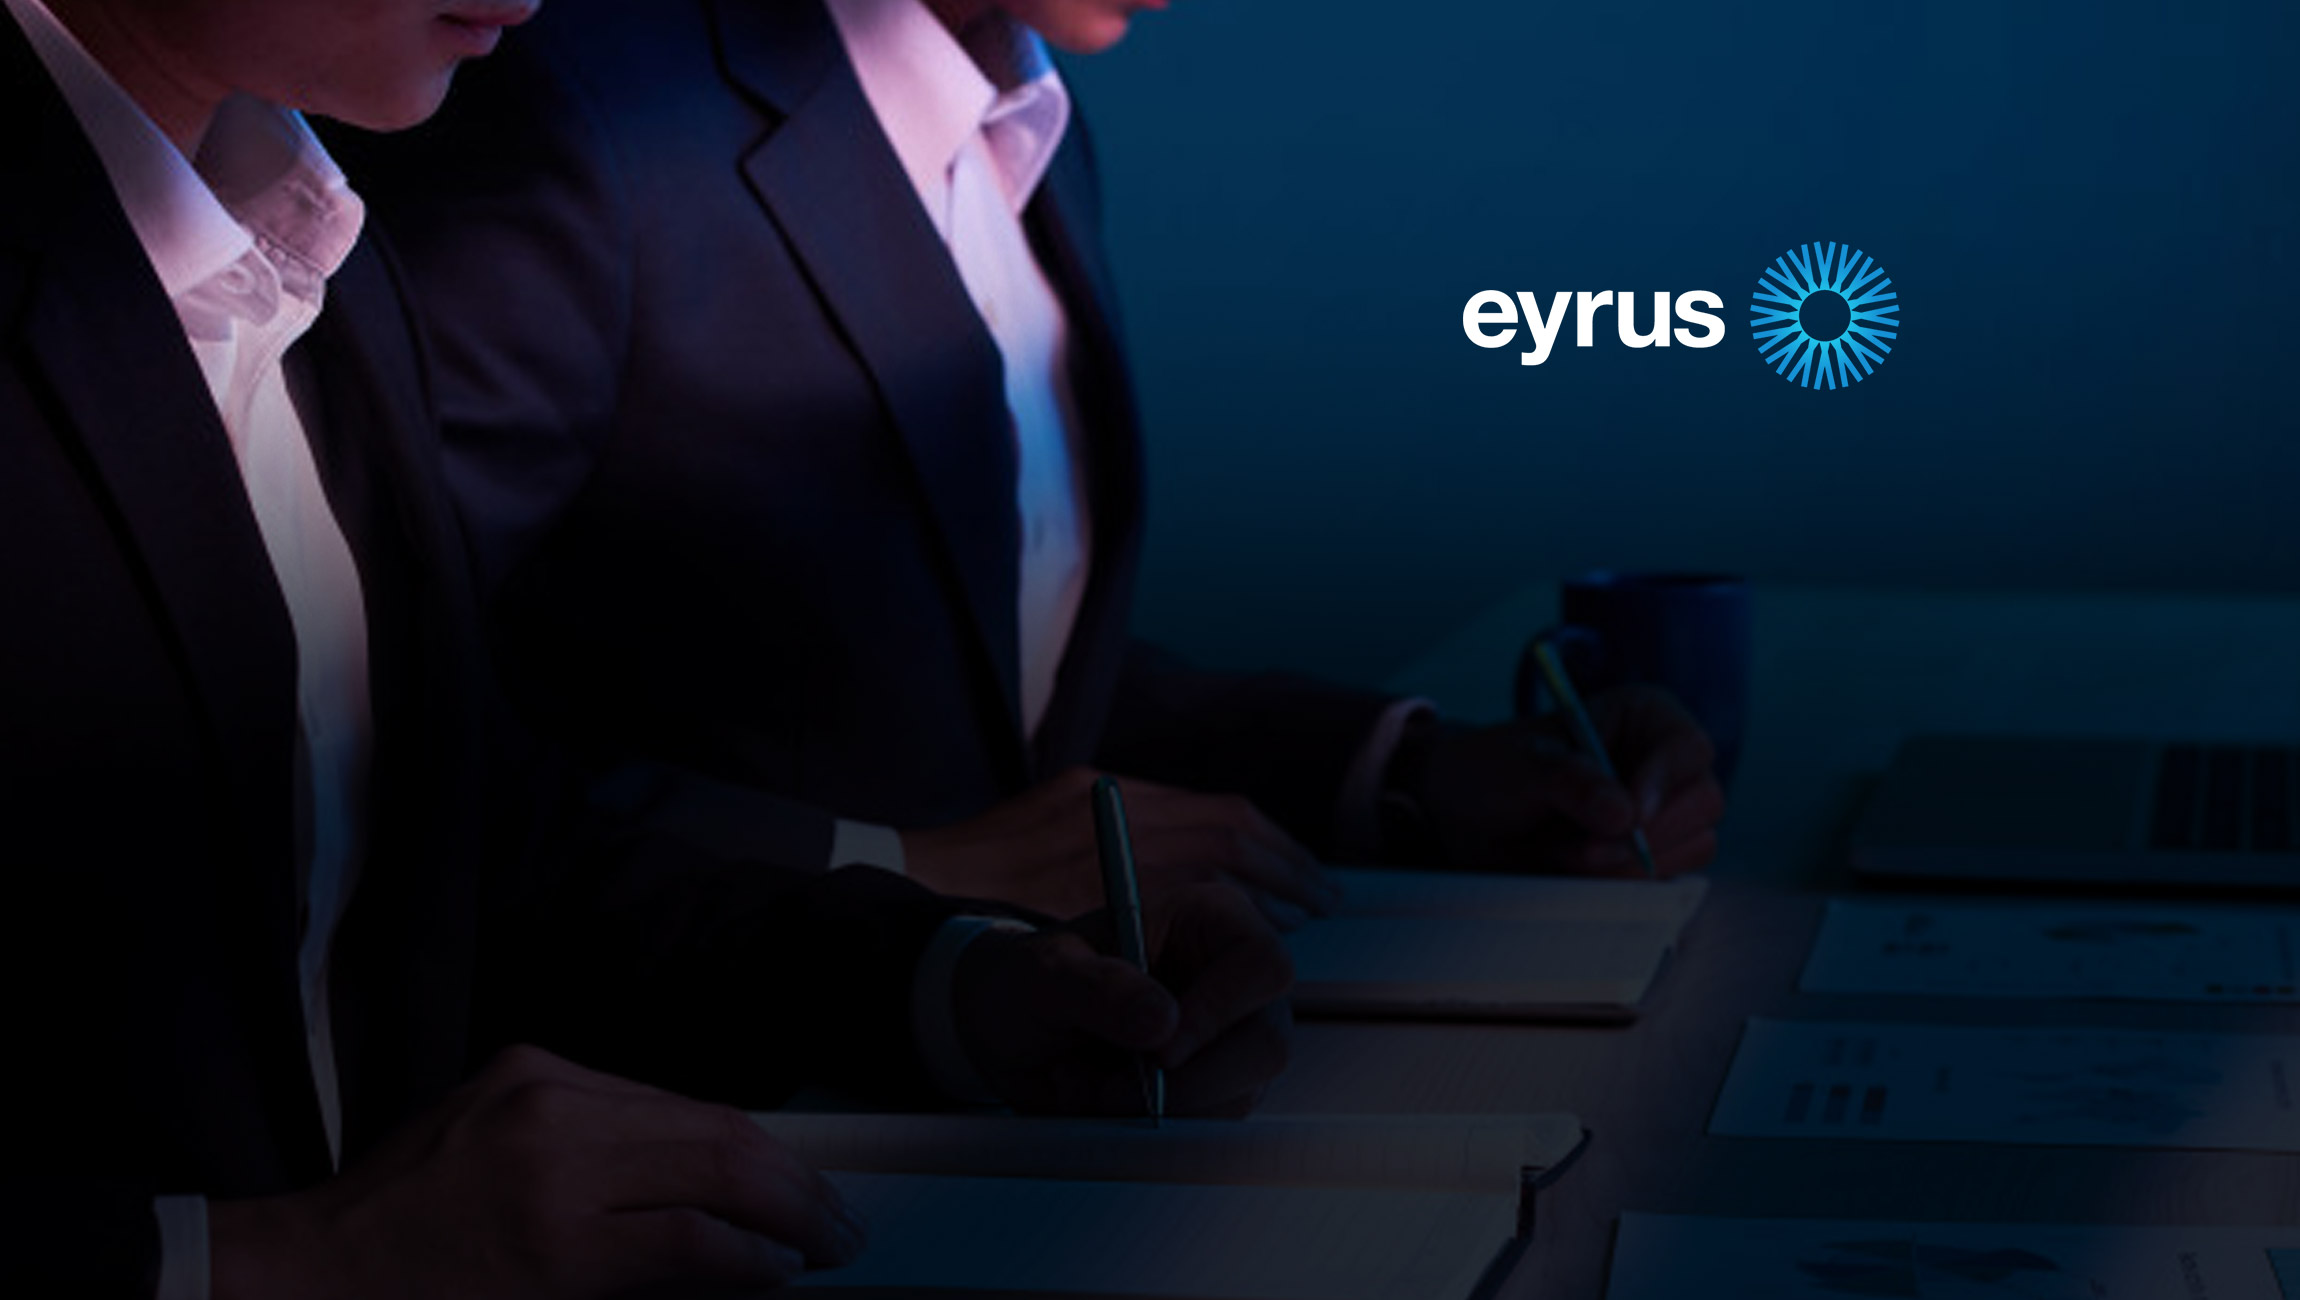 HITT Employs Eyrus to Tackle Risk Mitigation in Addition to Compliance and Safety Support